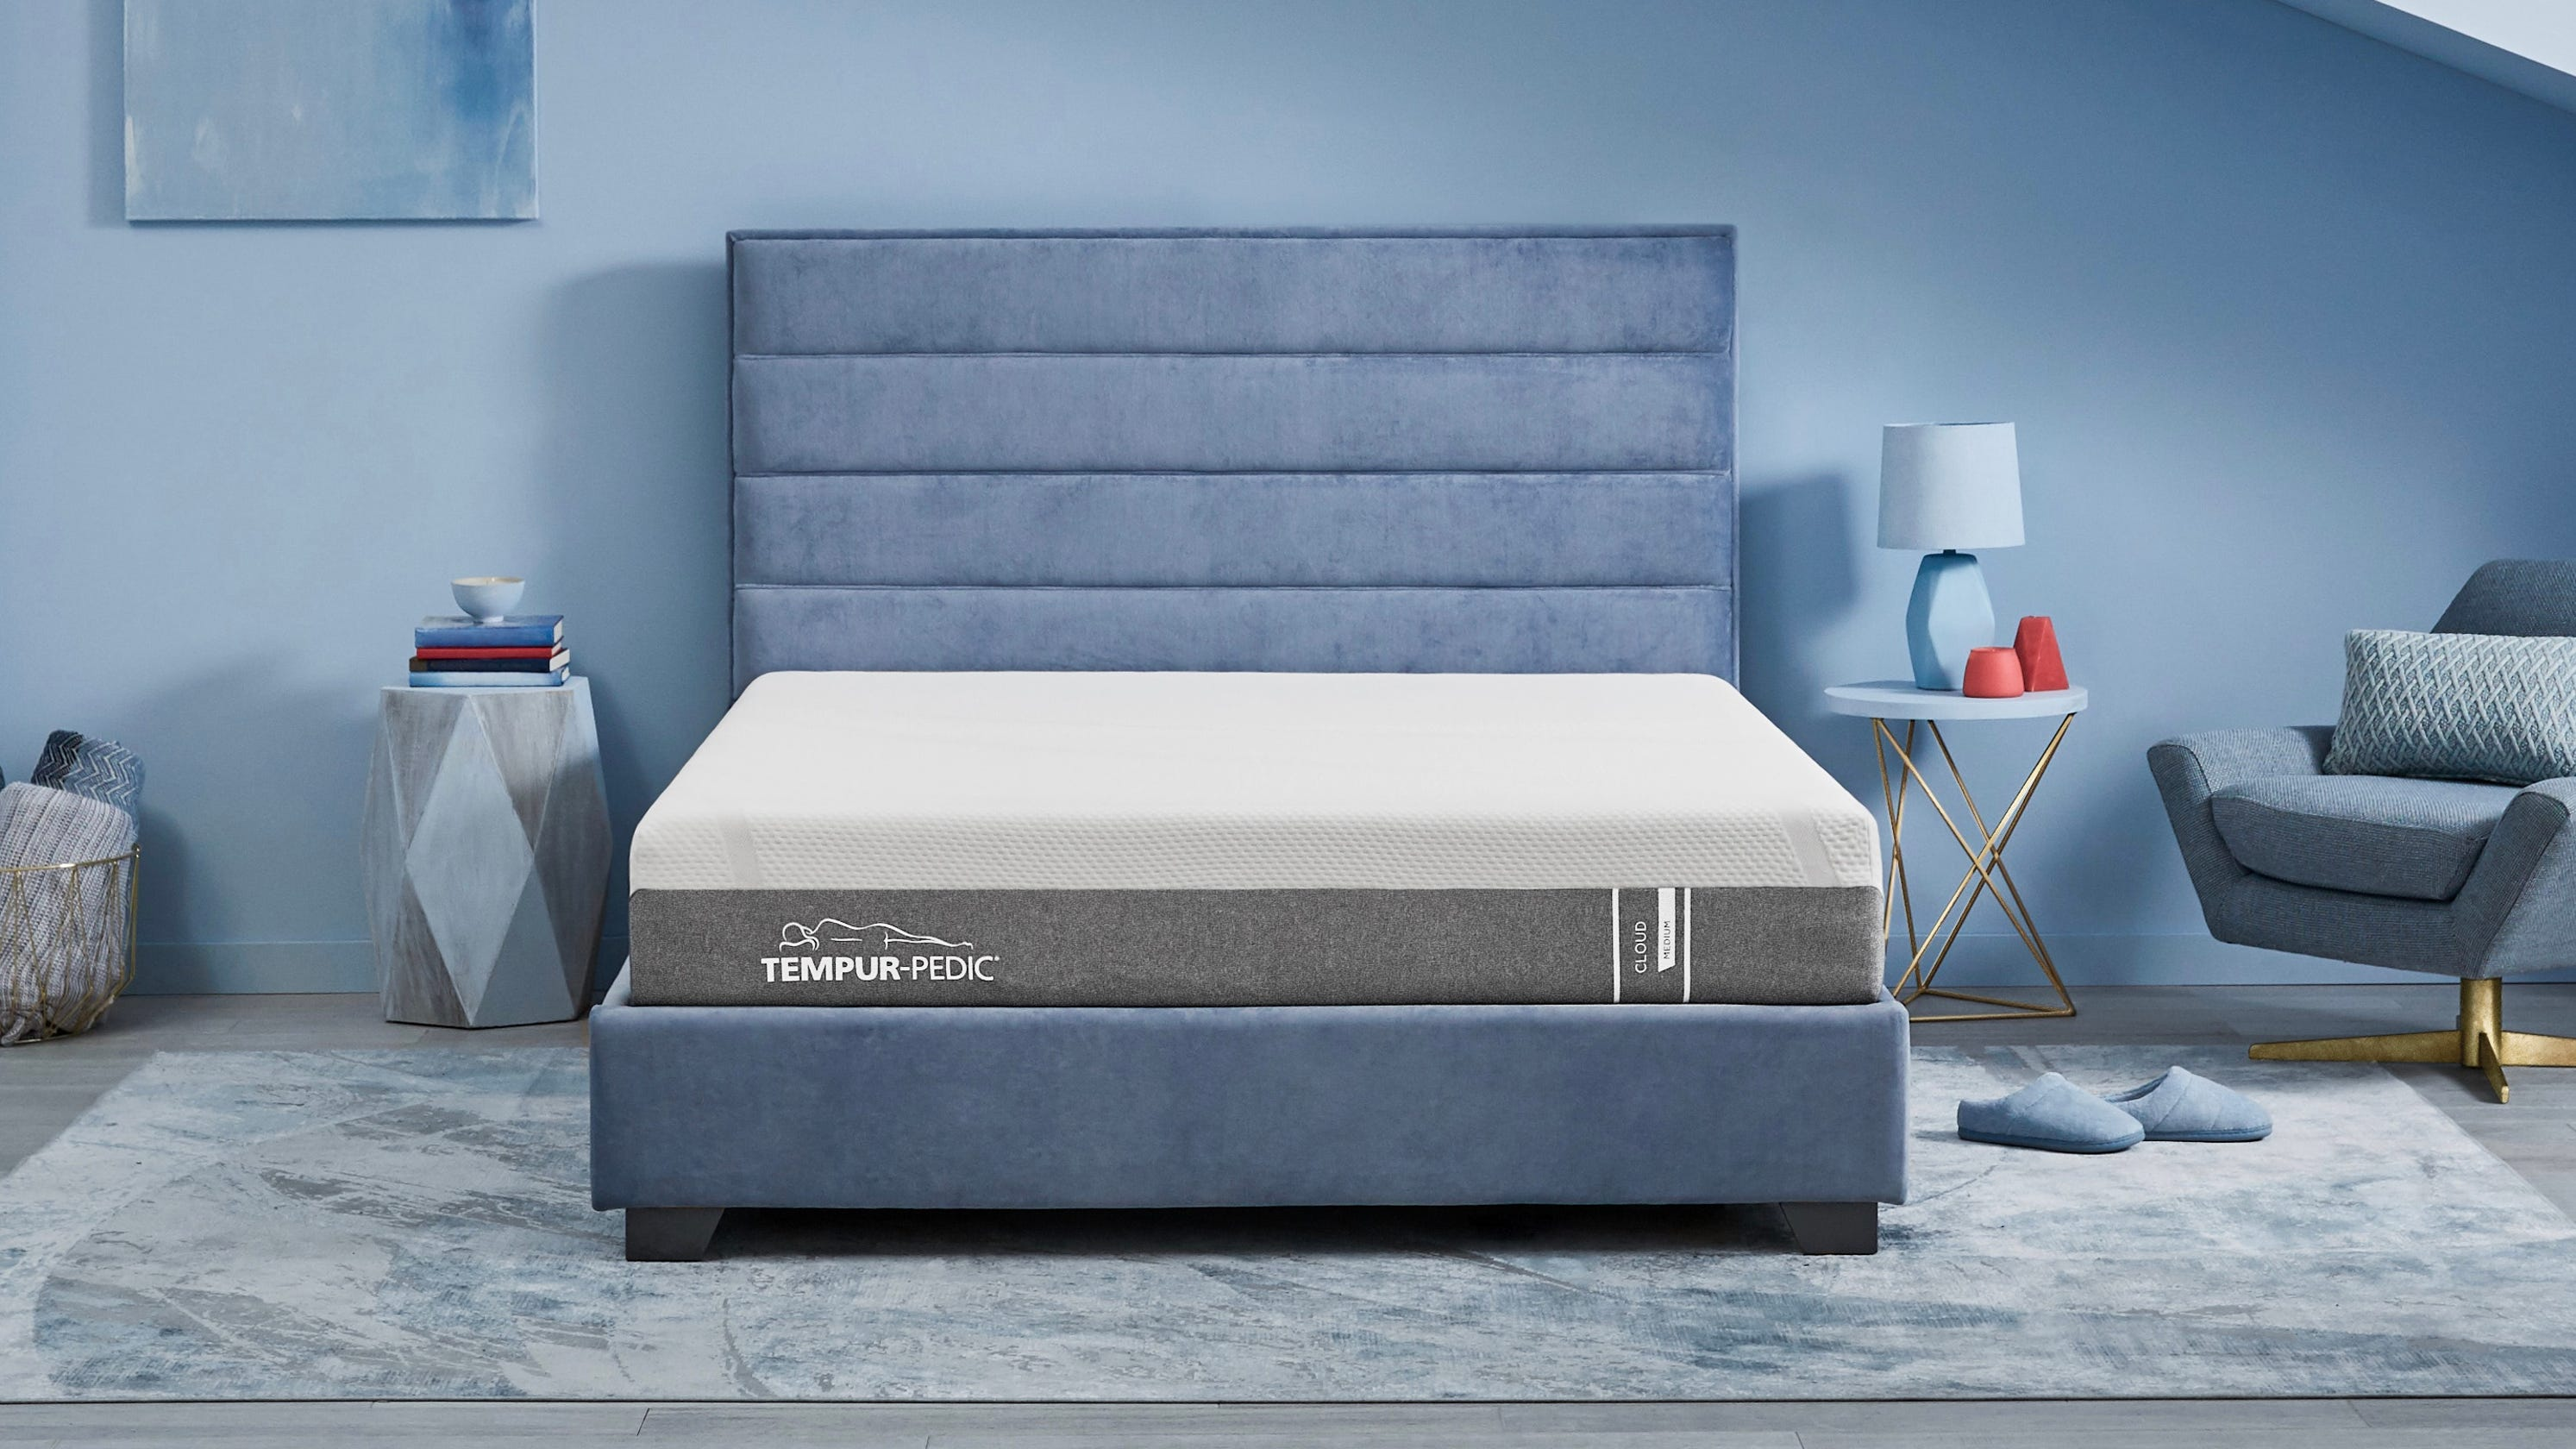 online store 5bf08 0fe77 Tempur-Pedic mattress: Tempur Cloud bed-in-a-box is revealed